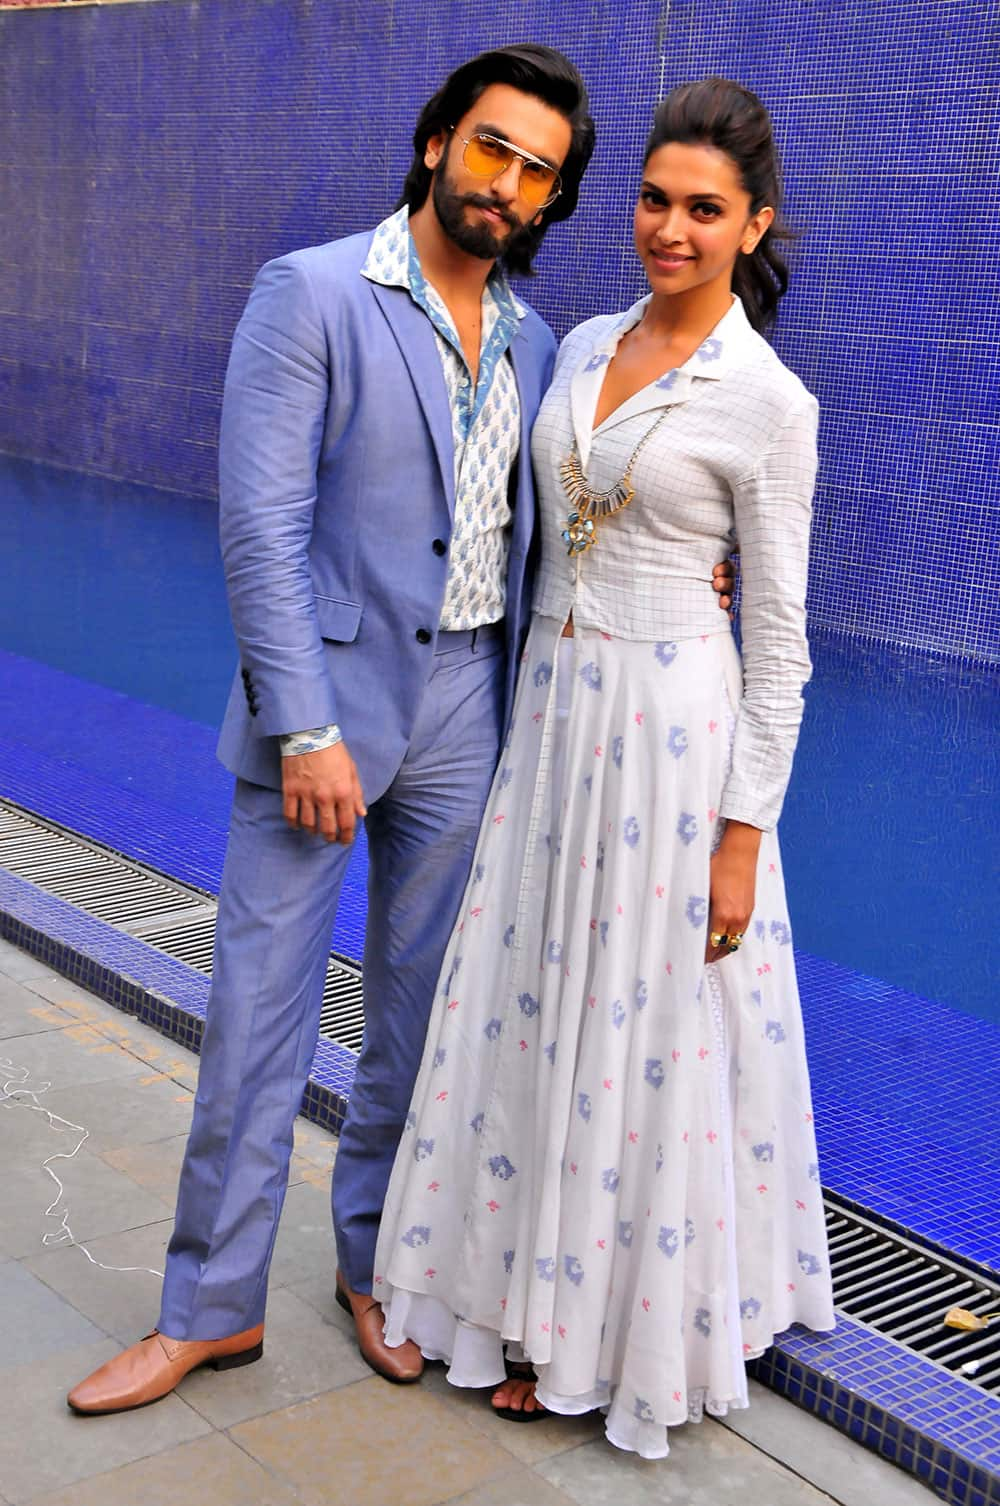 After Ranveer Singh and Deepika Padukone pose specially for After Hrs at the promotions of their upcoming film Ram Leela. We caught the duo as they checked into The Park hotel. Pic Courtesy: DNA